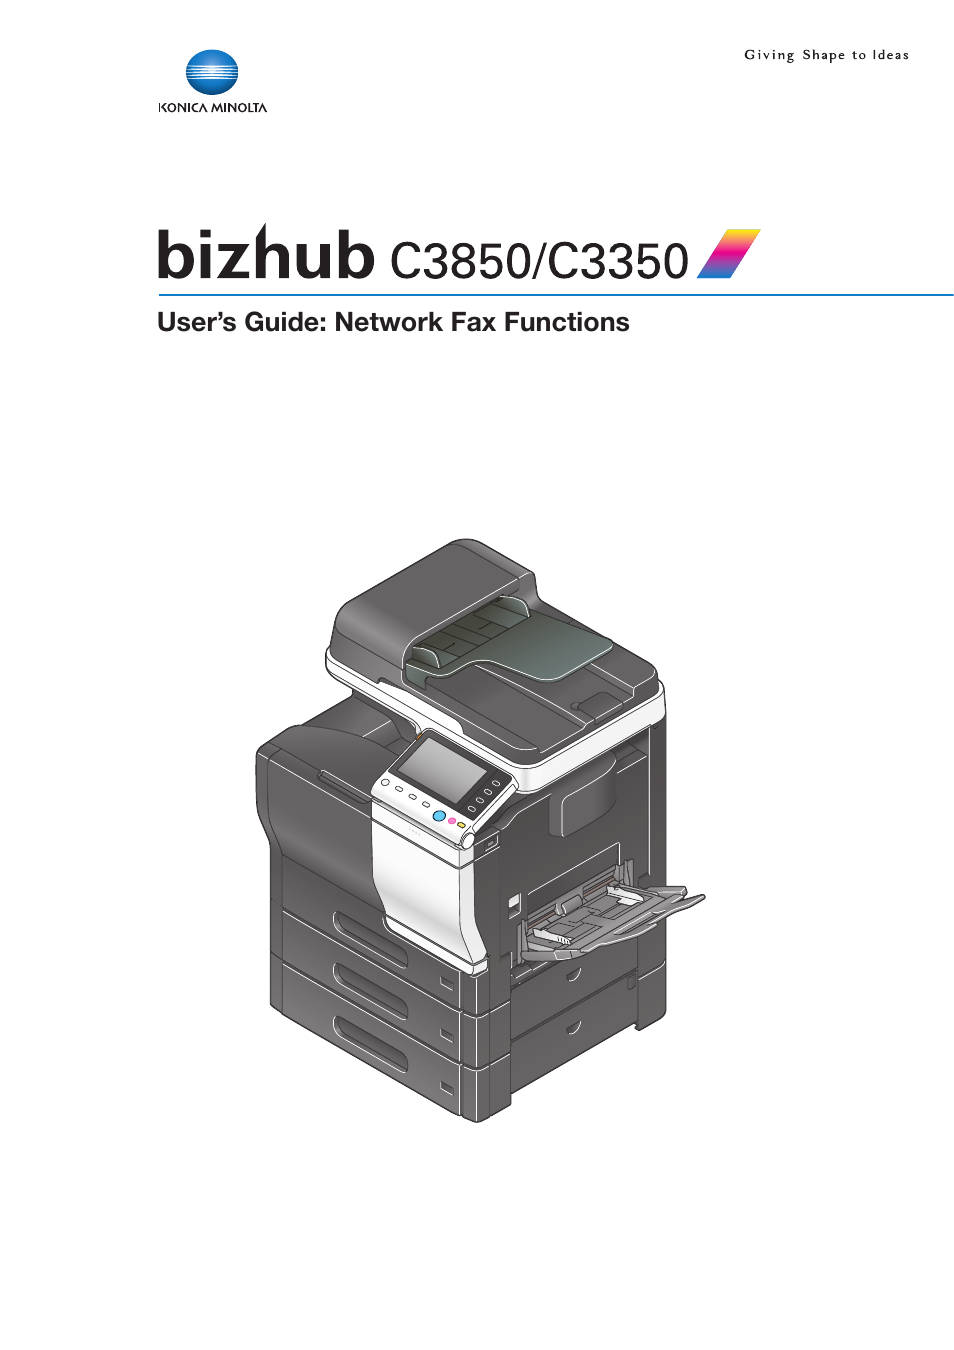 Konica Minolta bizhub C3350 User Manual | 42 pages | Also for: bizhub C3850